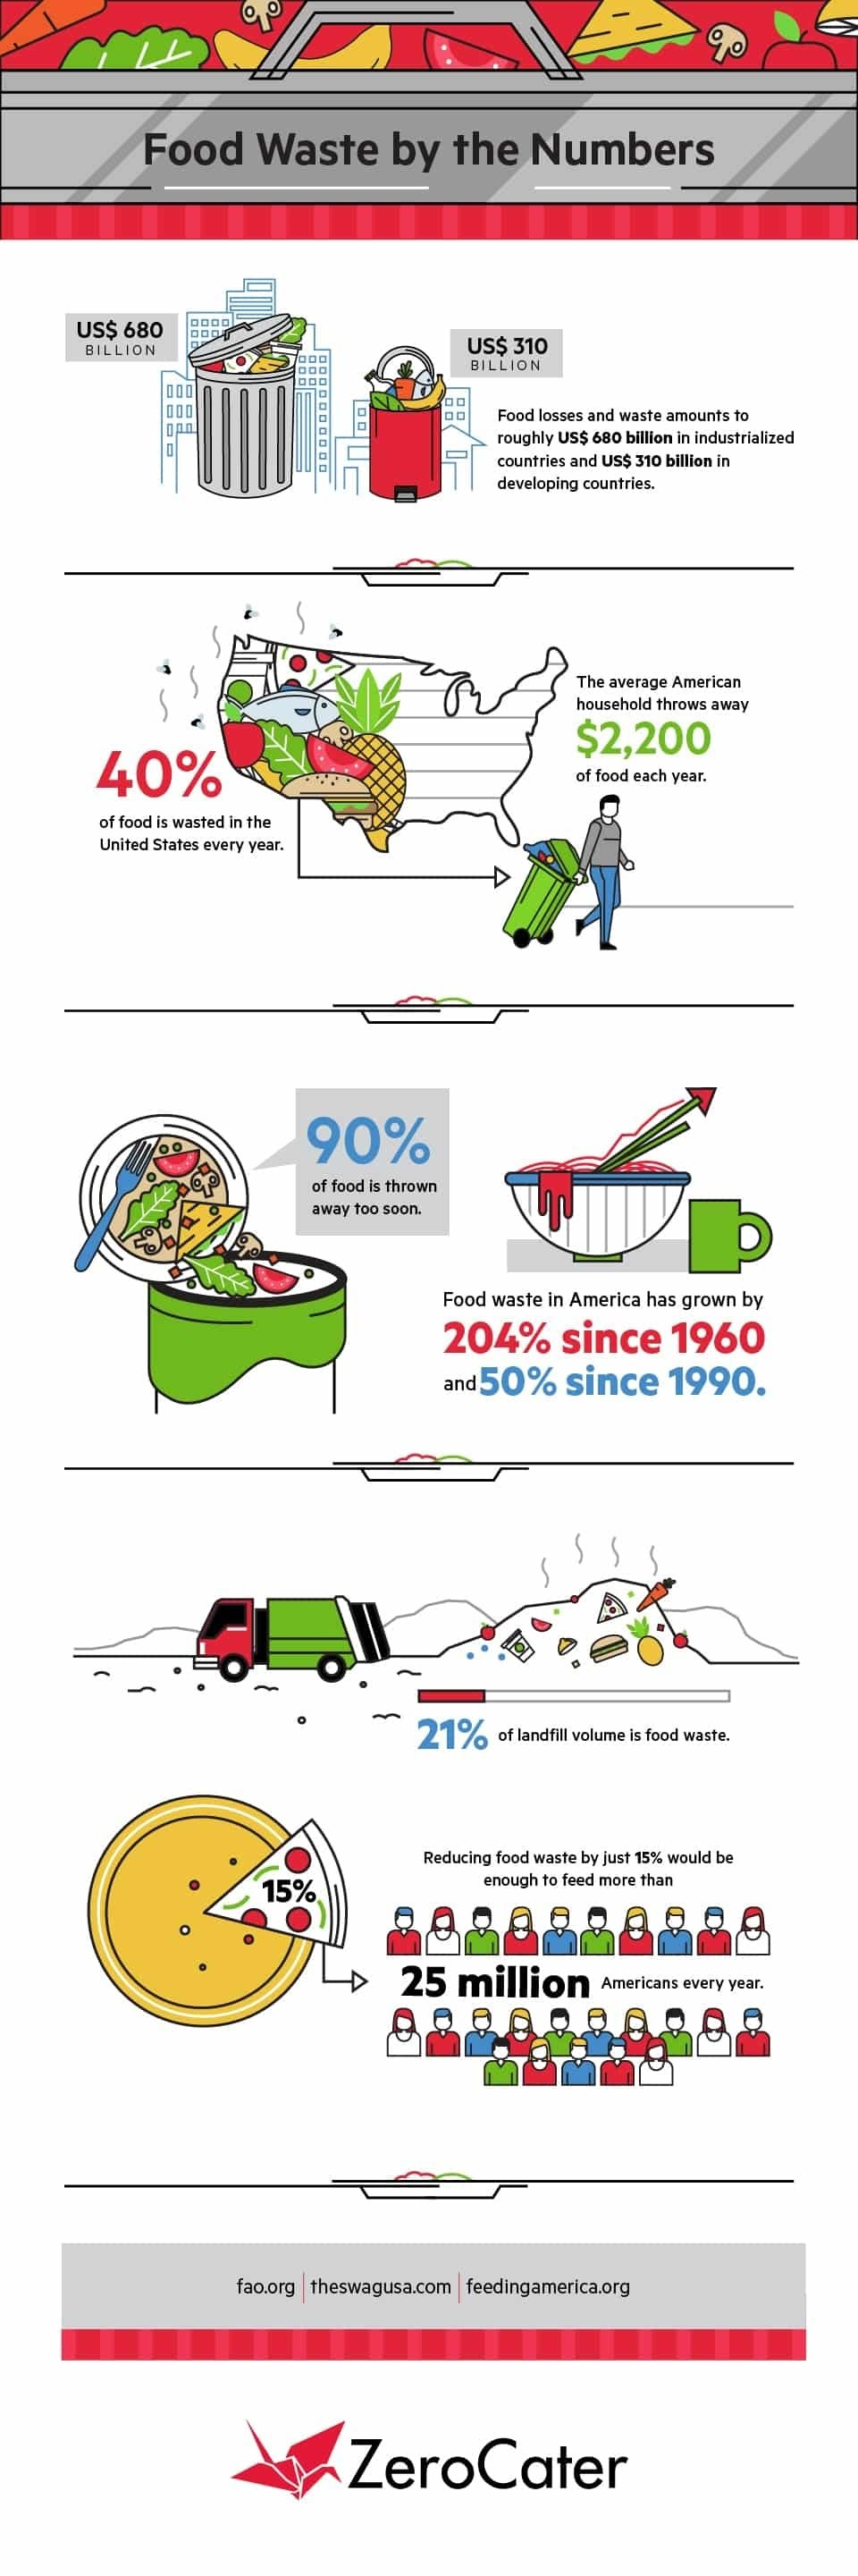 Food Waste By the Numbers